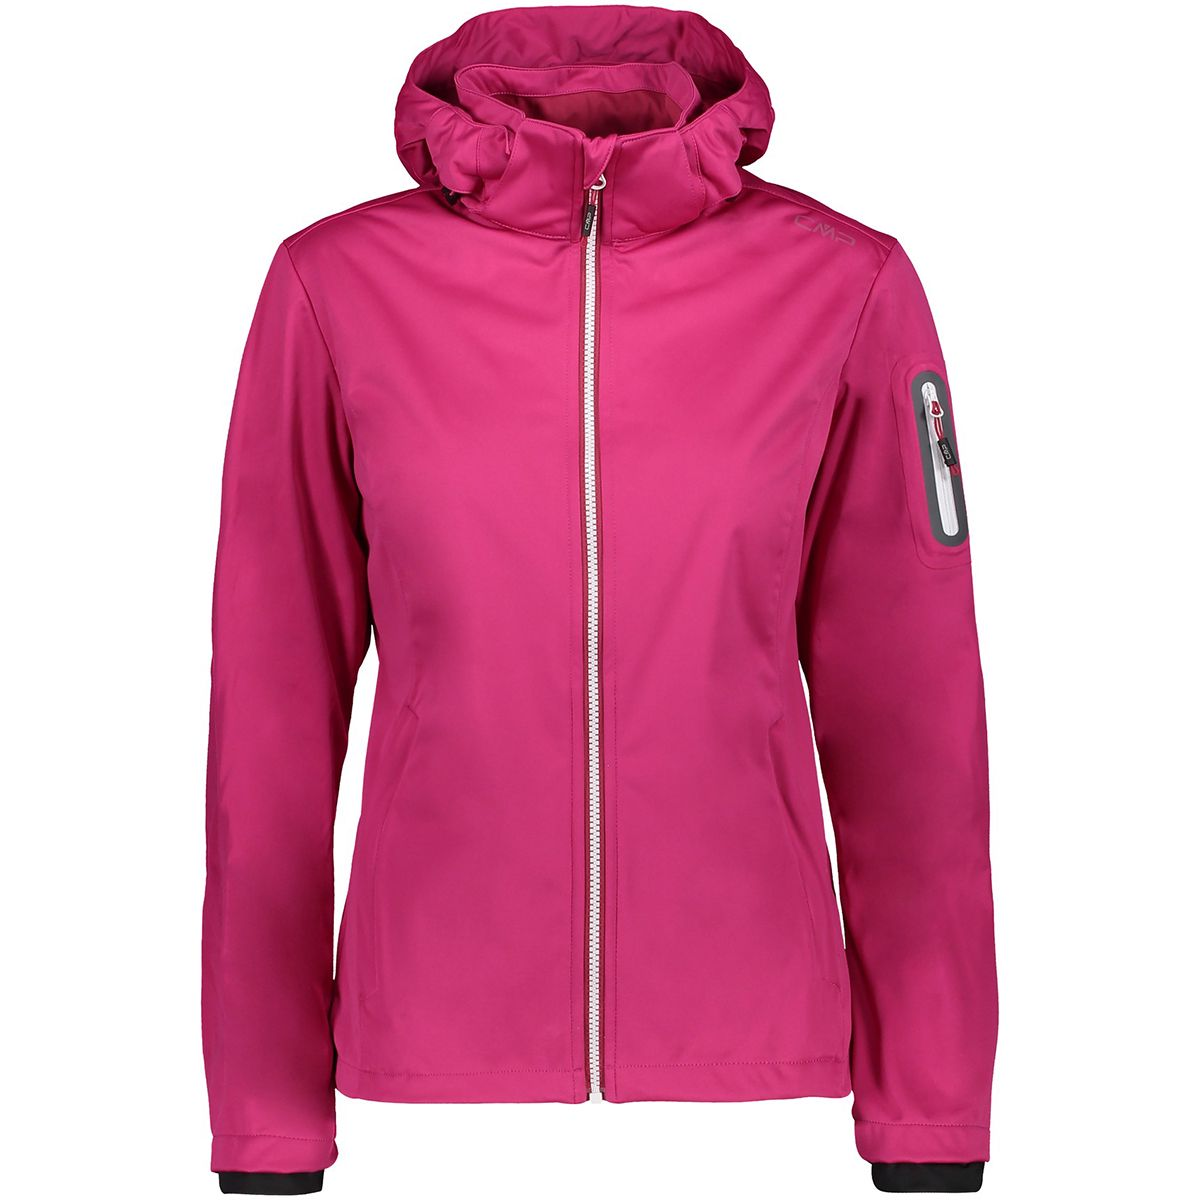 CMP Damen Light Softshell Jacke (Größe 3XL, Pink) | Softshelljacken > Damen